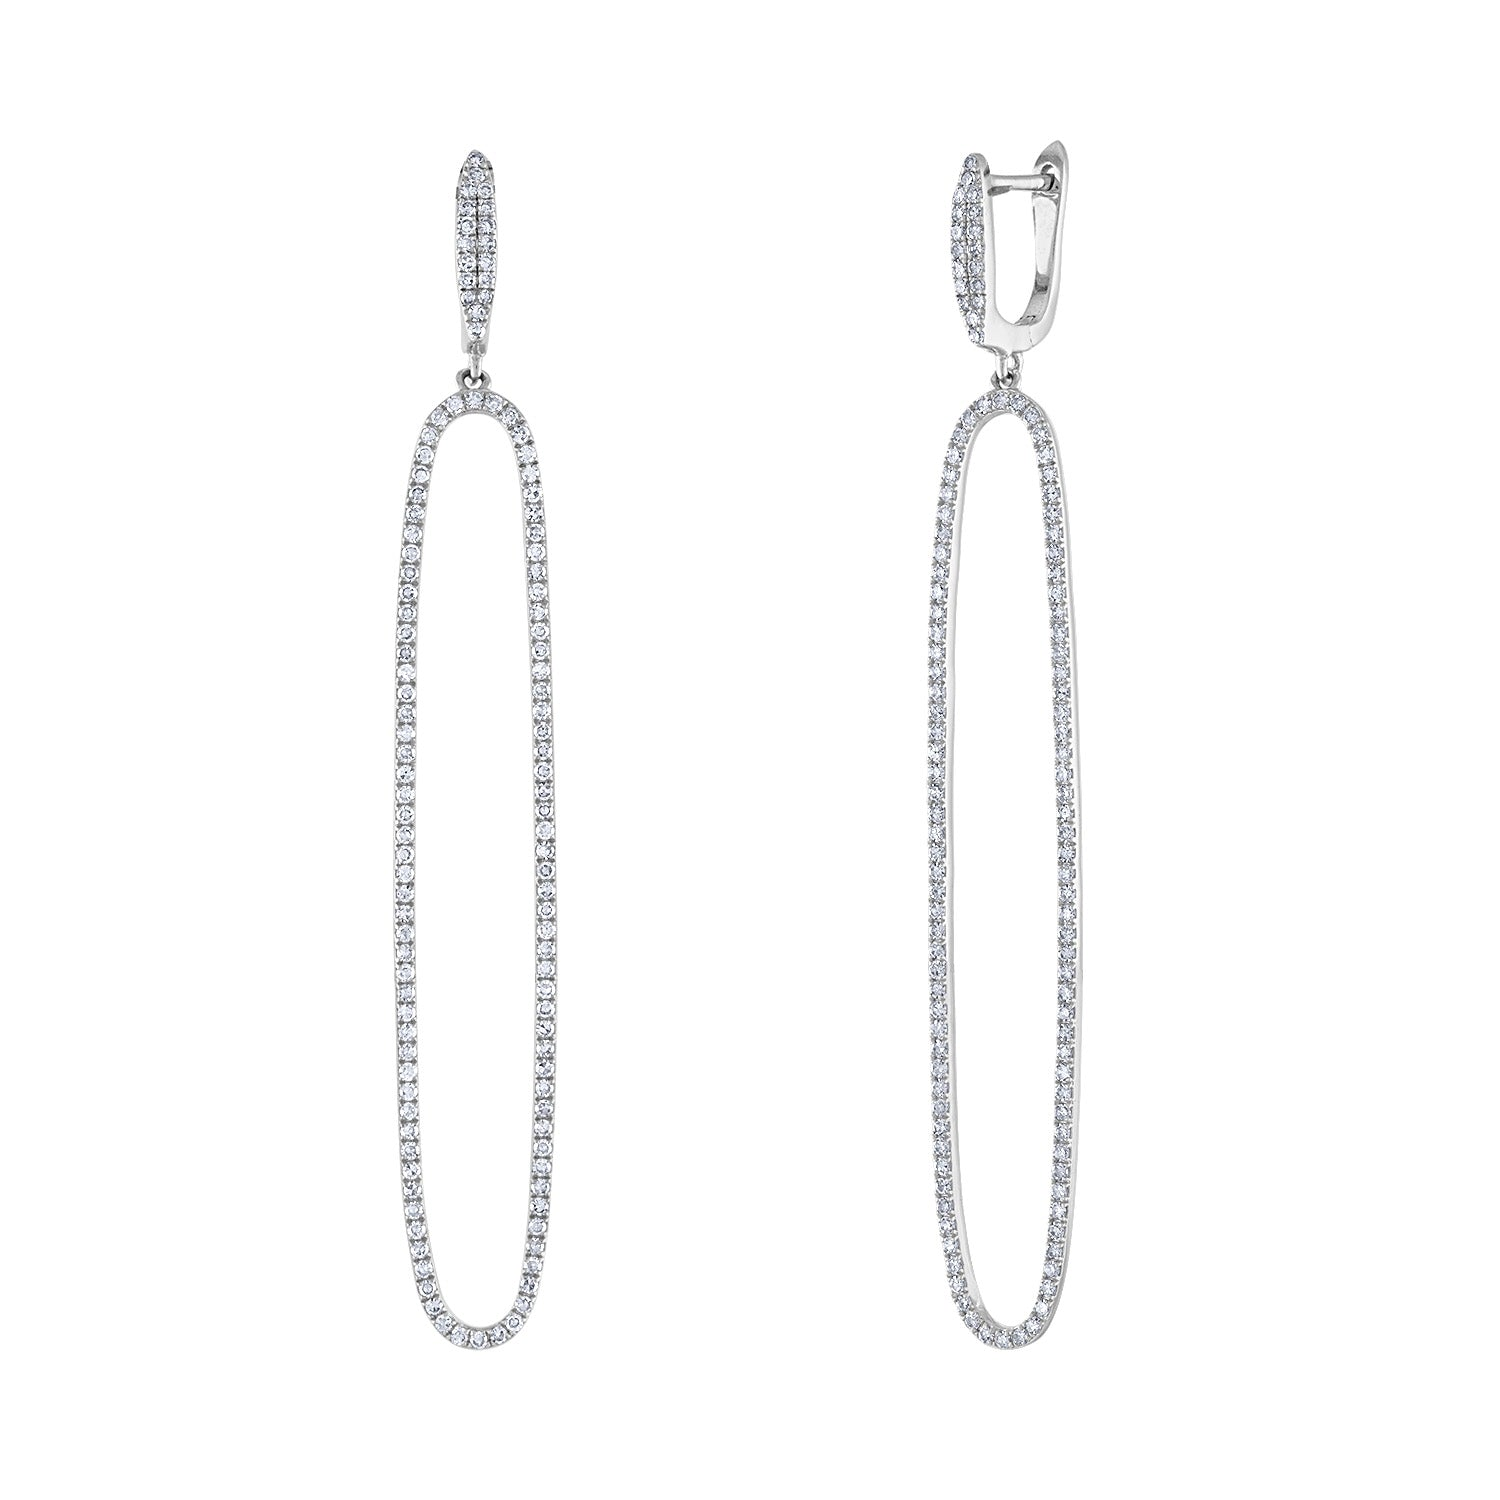 14k White Gold diamond long open oval earring